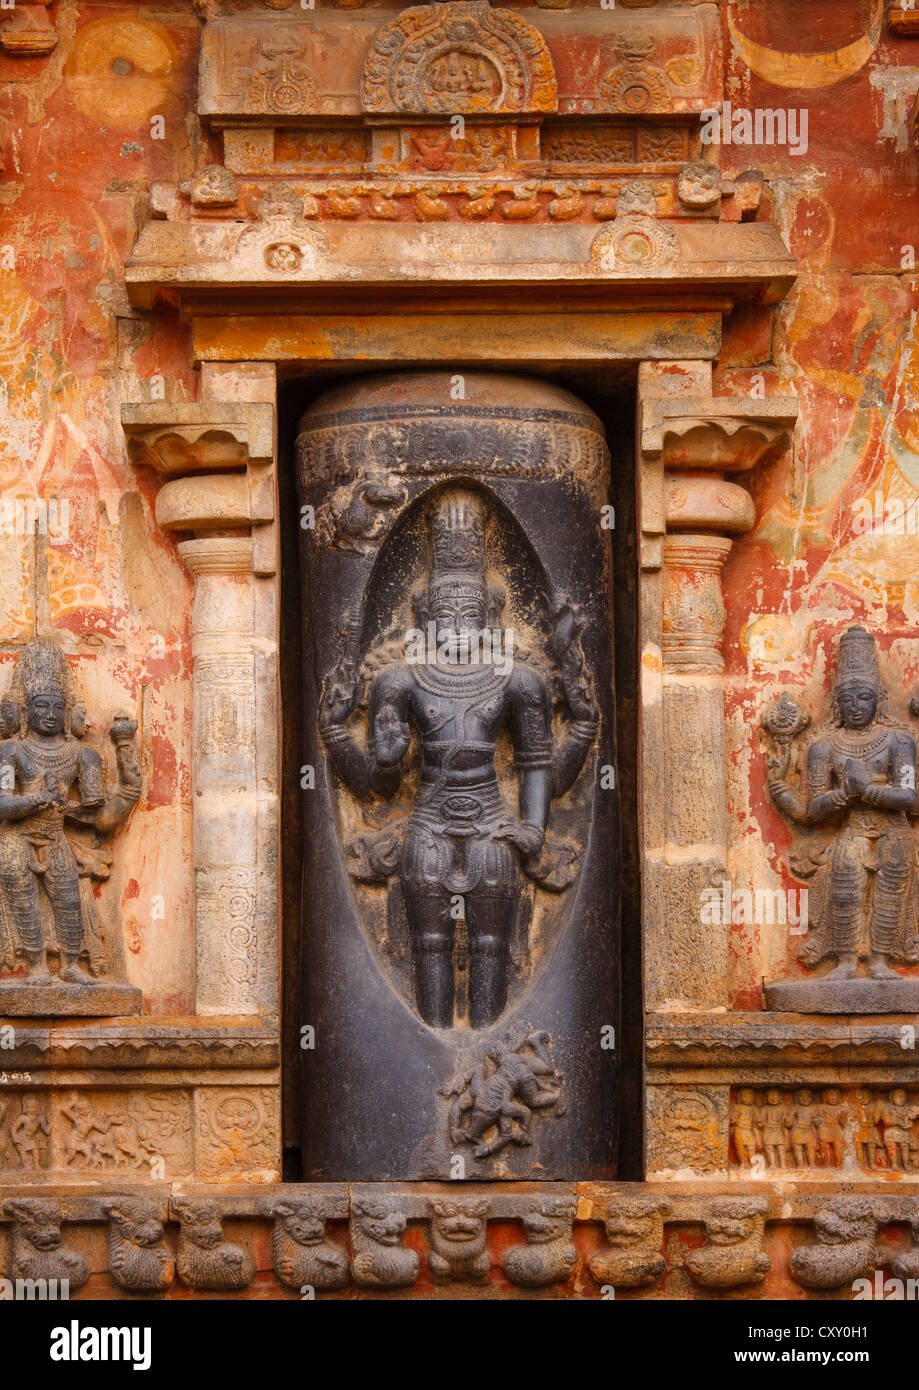 Carving Of Lord Shiva In A Lingam At The Bottom Of A Tower In The Airavatesvara Temple, Darasuram, India - Stock Image